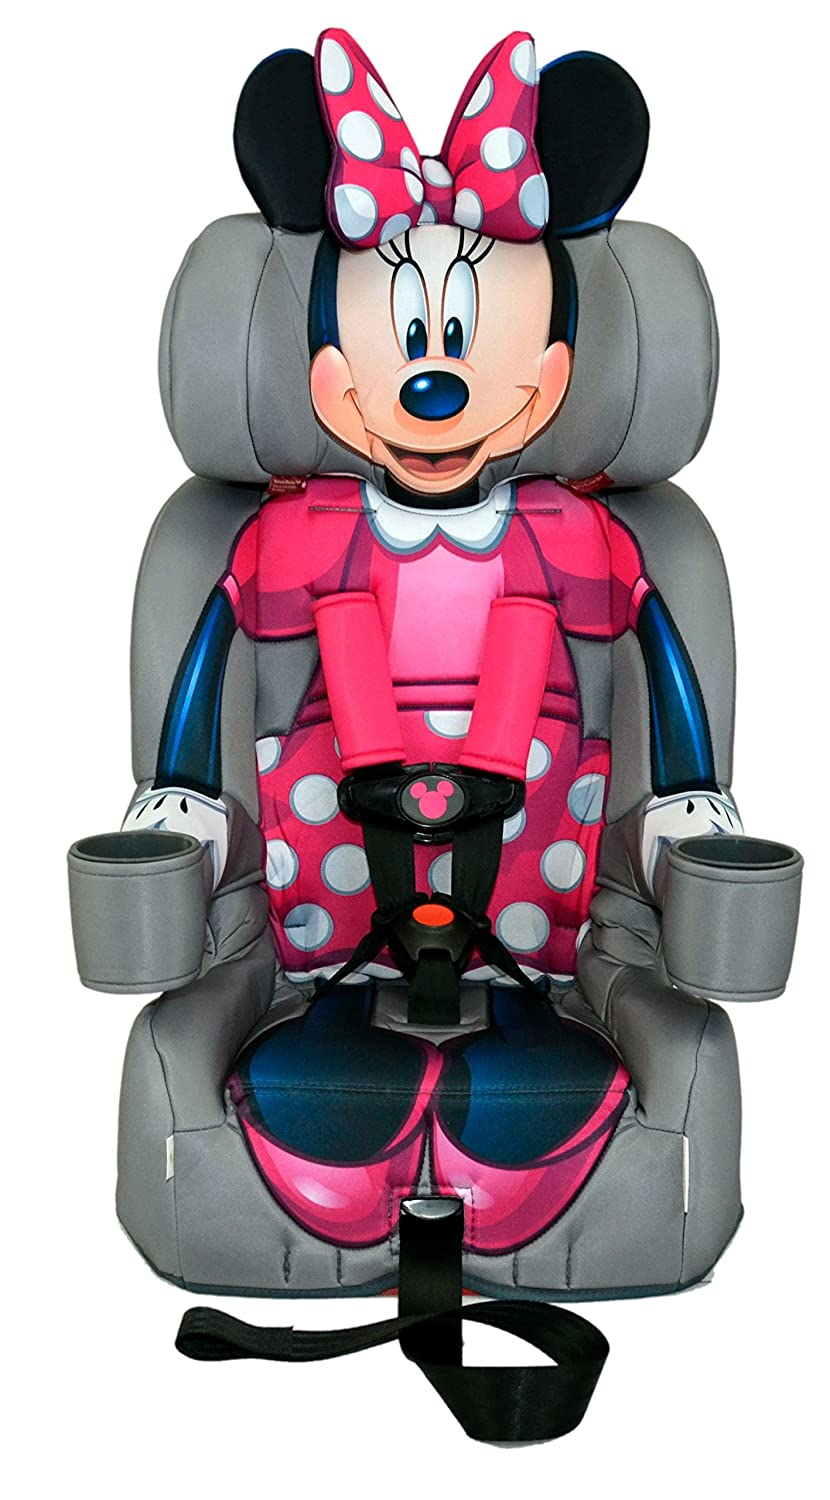 KidsEmbrace Friendship Combination Booster - Minnie Mouse, Grey/Pink 3001MINCAN